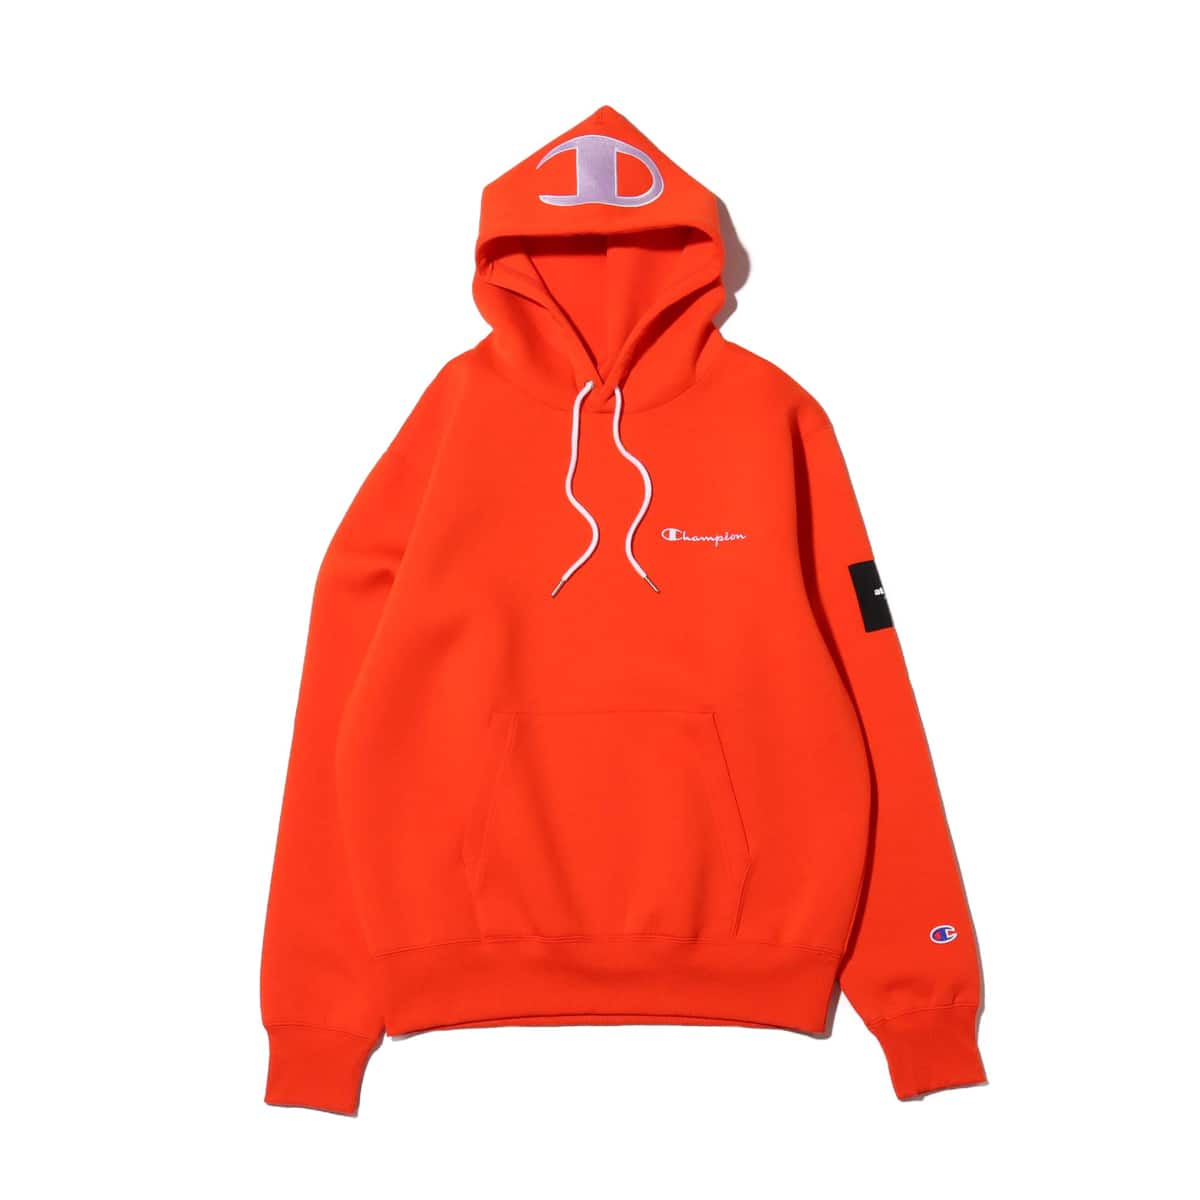 Champion x ATMOS LAB WRAP AIR PULLOVER HOODED SWEATSHIRT オレンジ 19FW-S_photo_large